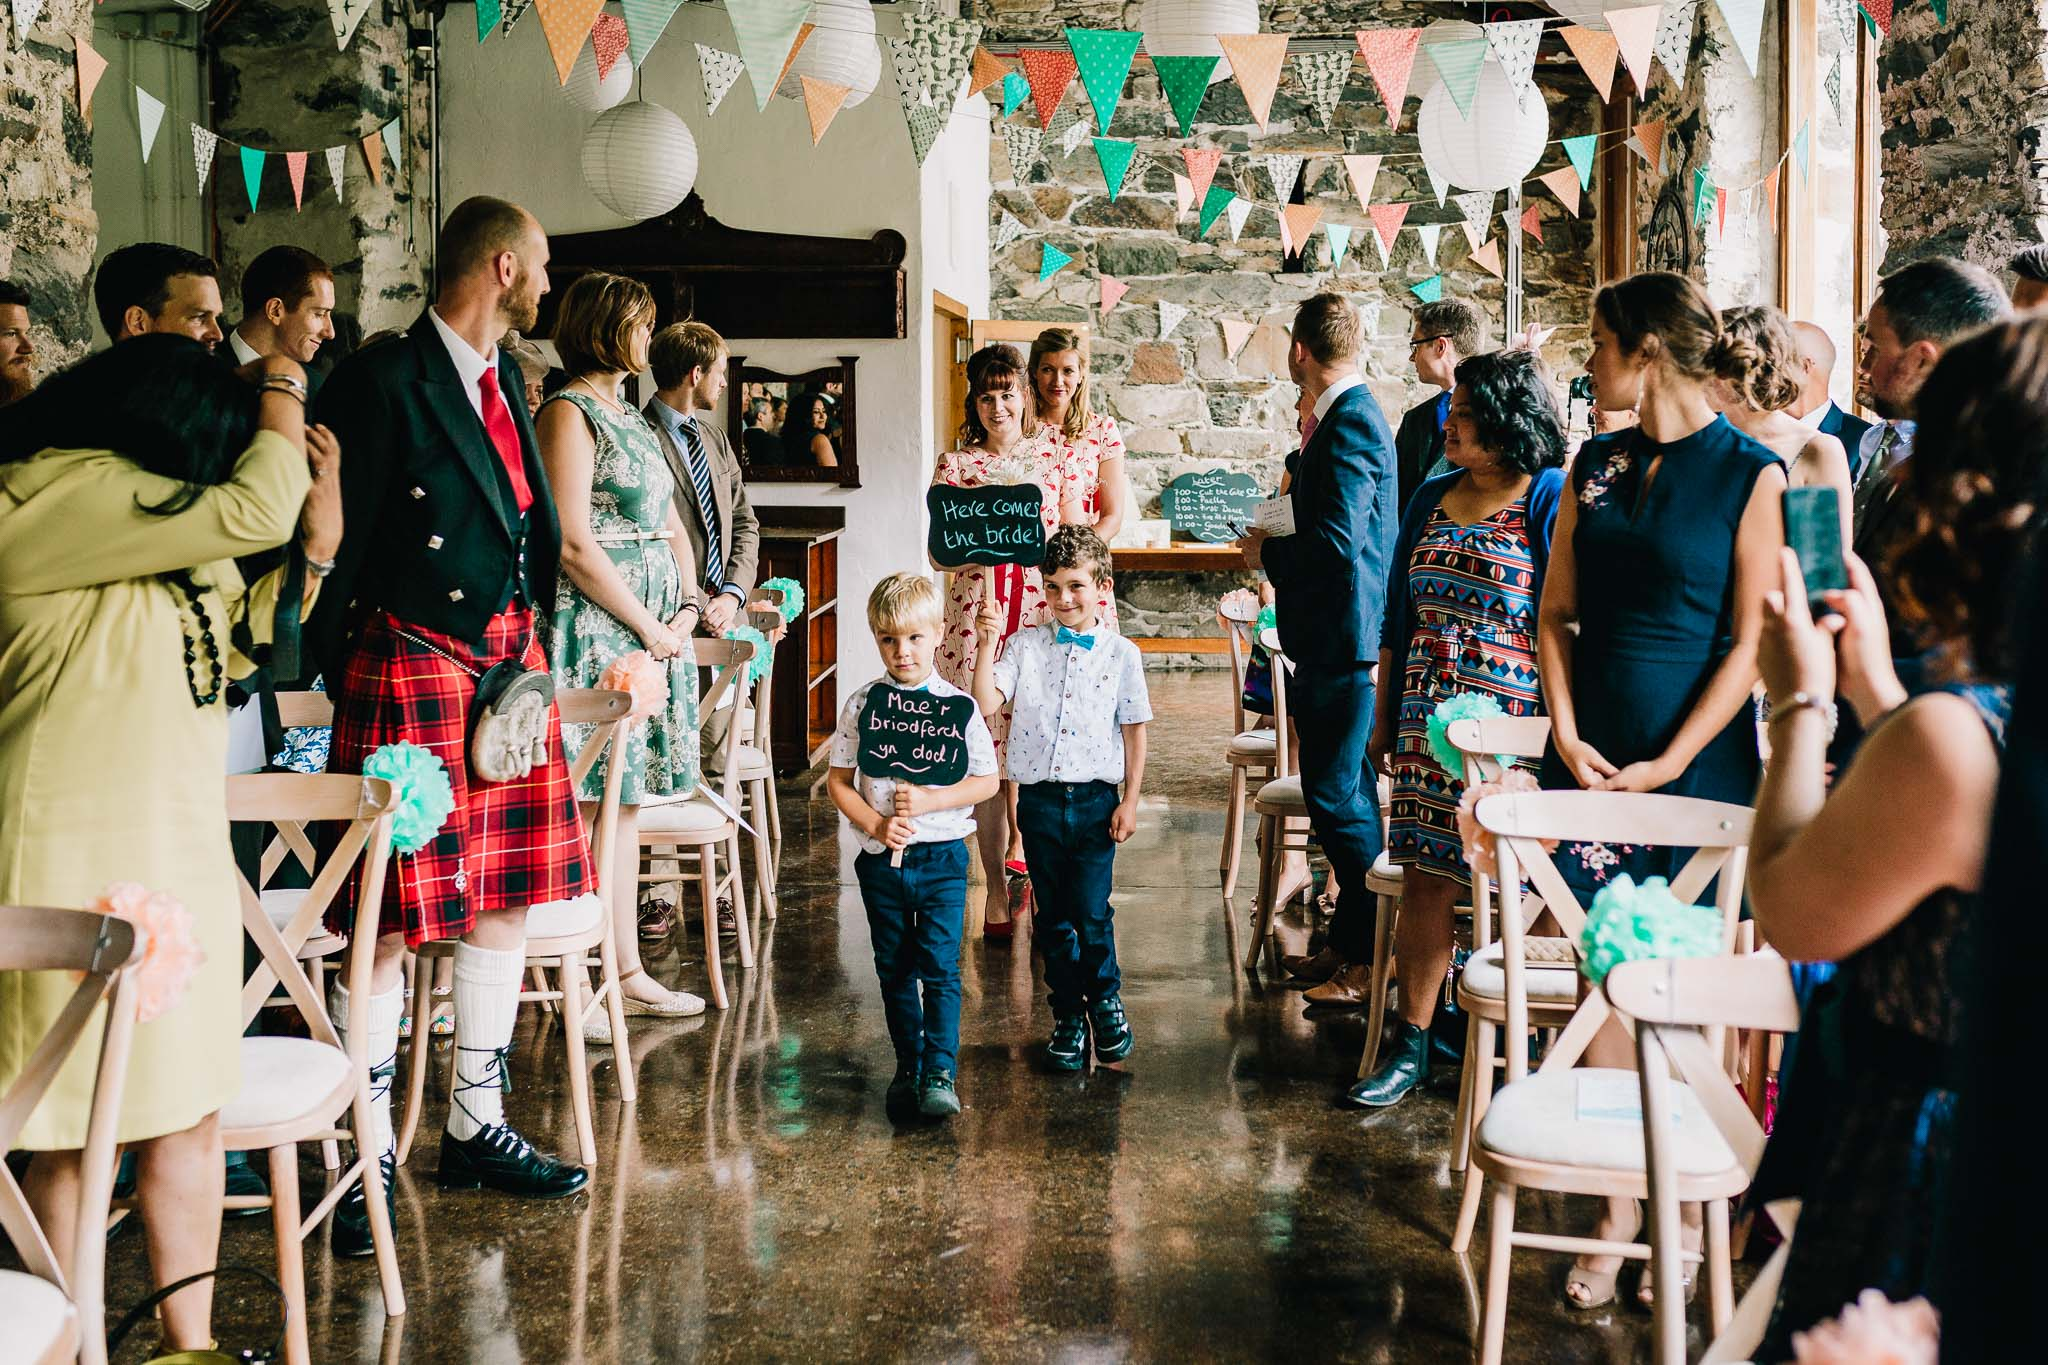 YOUNG WEDDING GUESTS WALKING DOWN THE ISLE BEFORE BRIDE ENTERS BARN